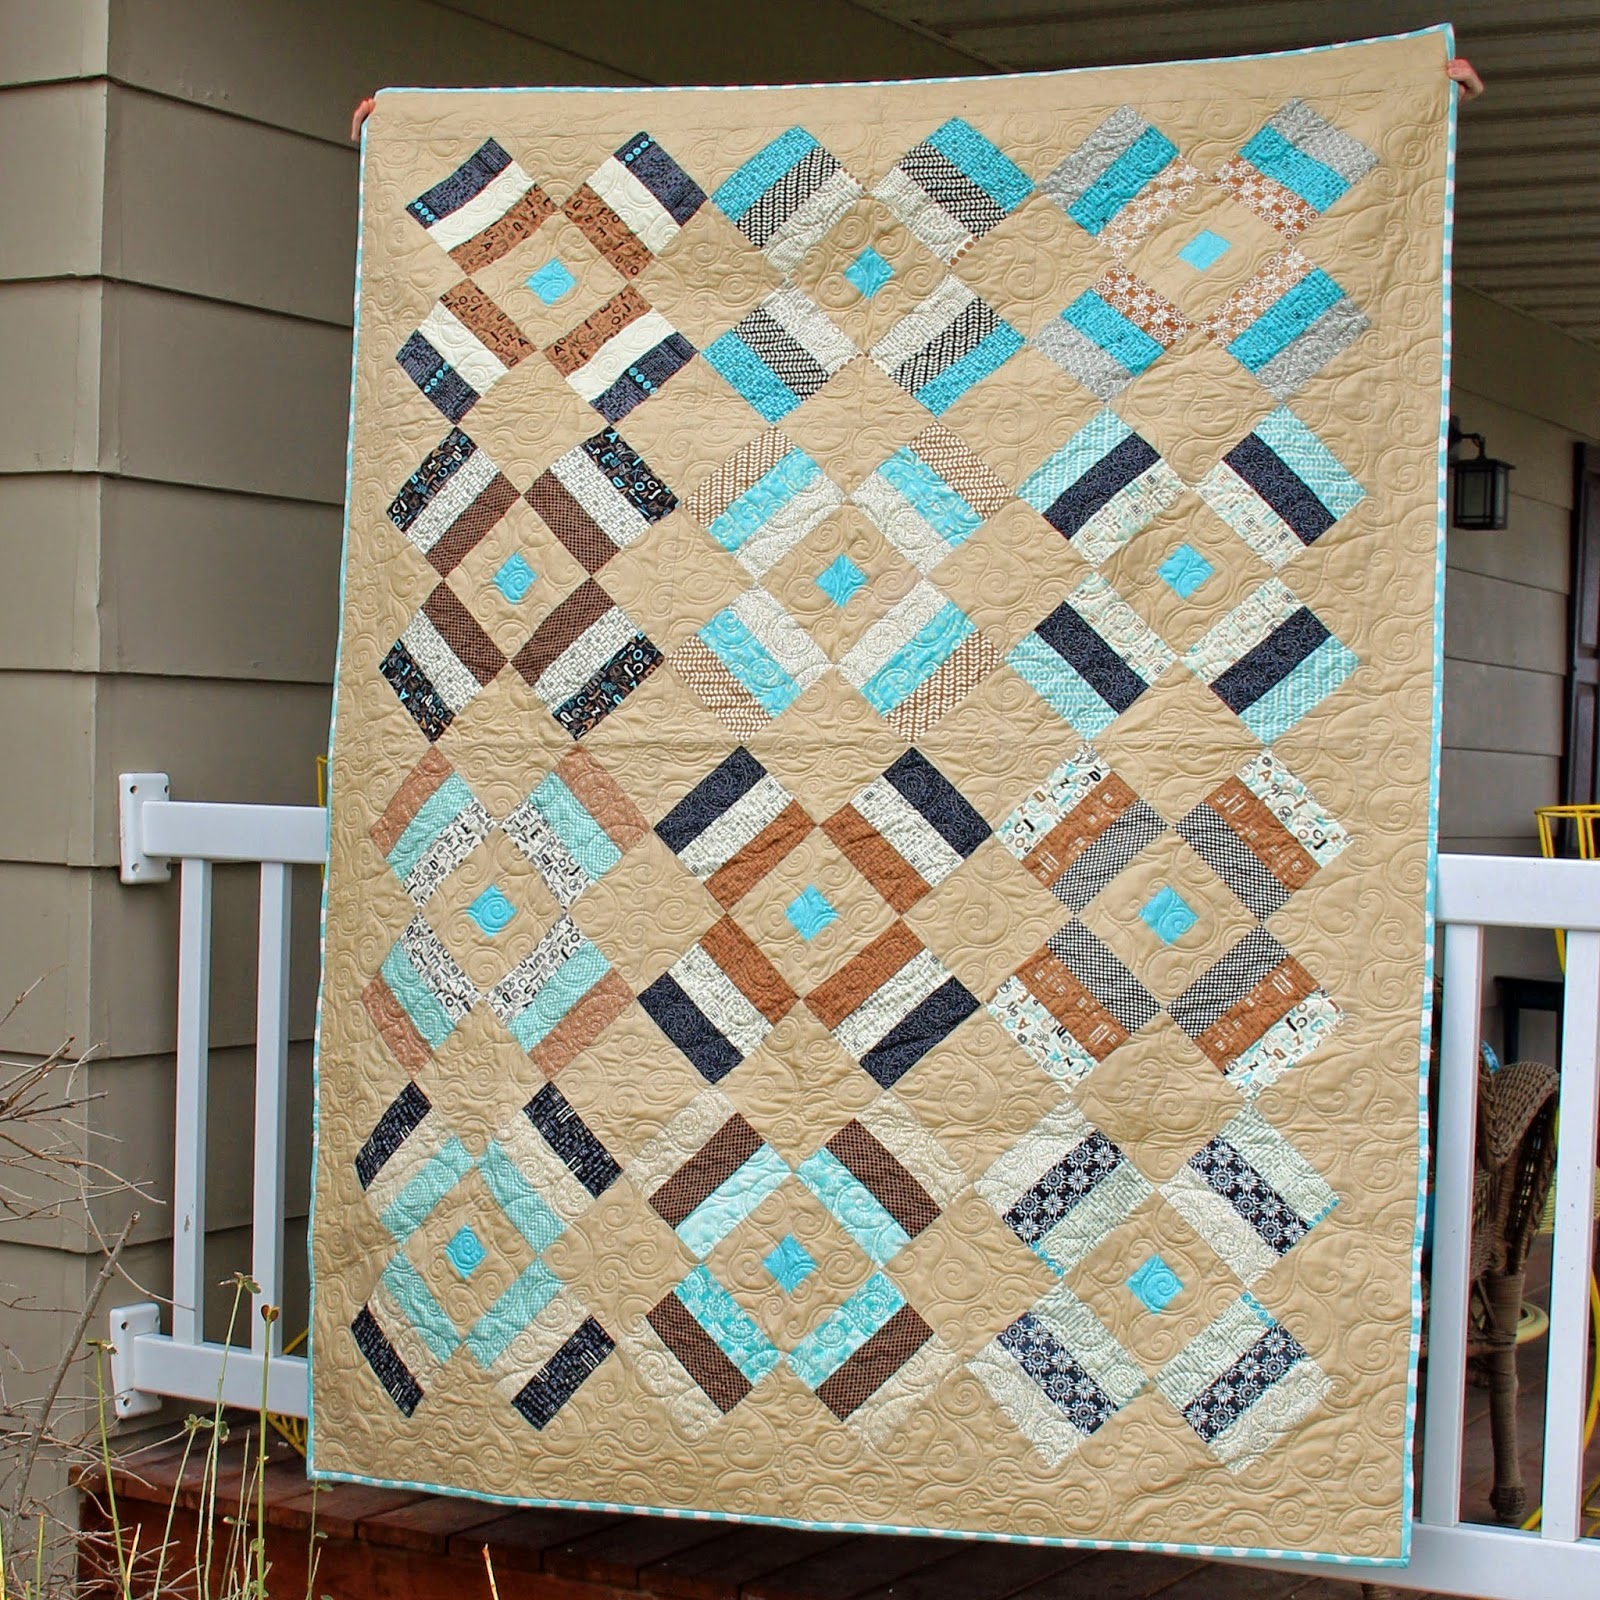 Lap quilt from Sweetwater's Elementary Fabric line by Moda using a jelly roll and a pattern from Strip Savvy book.